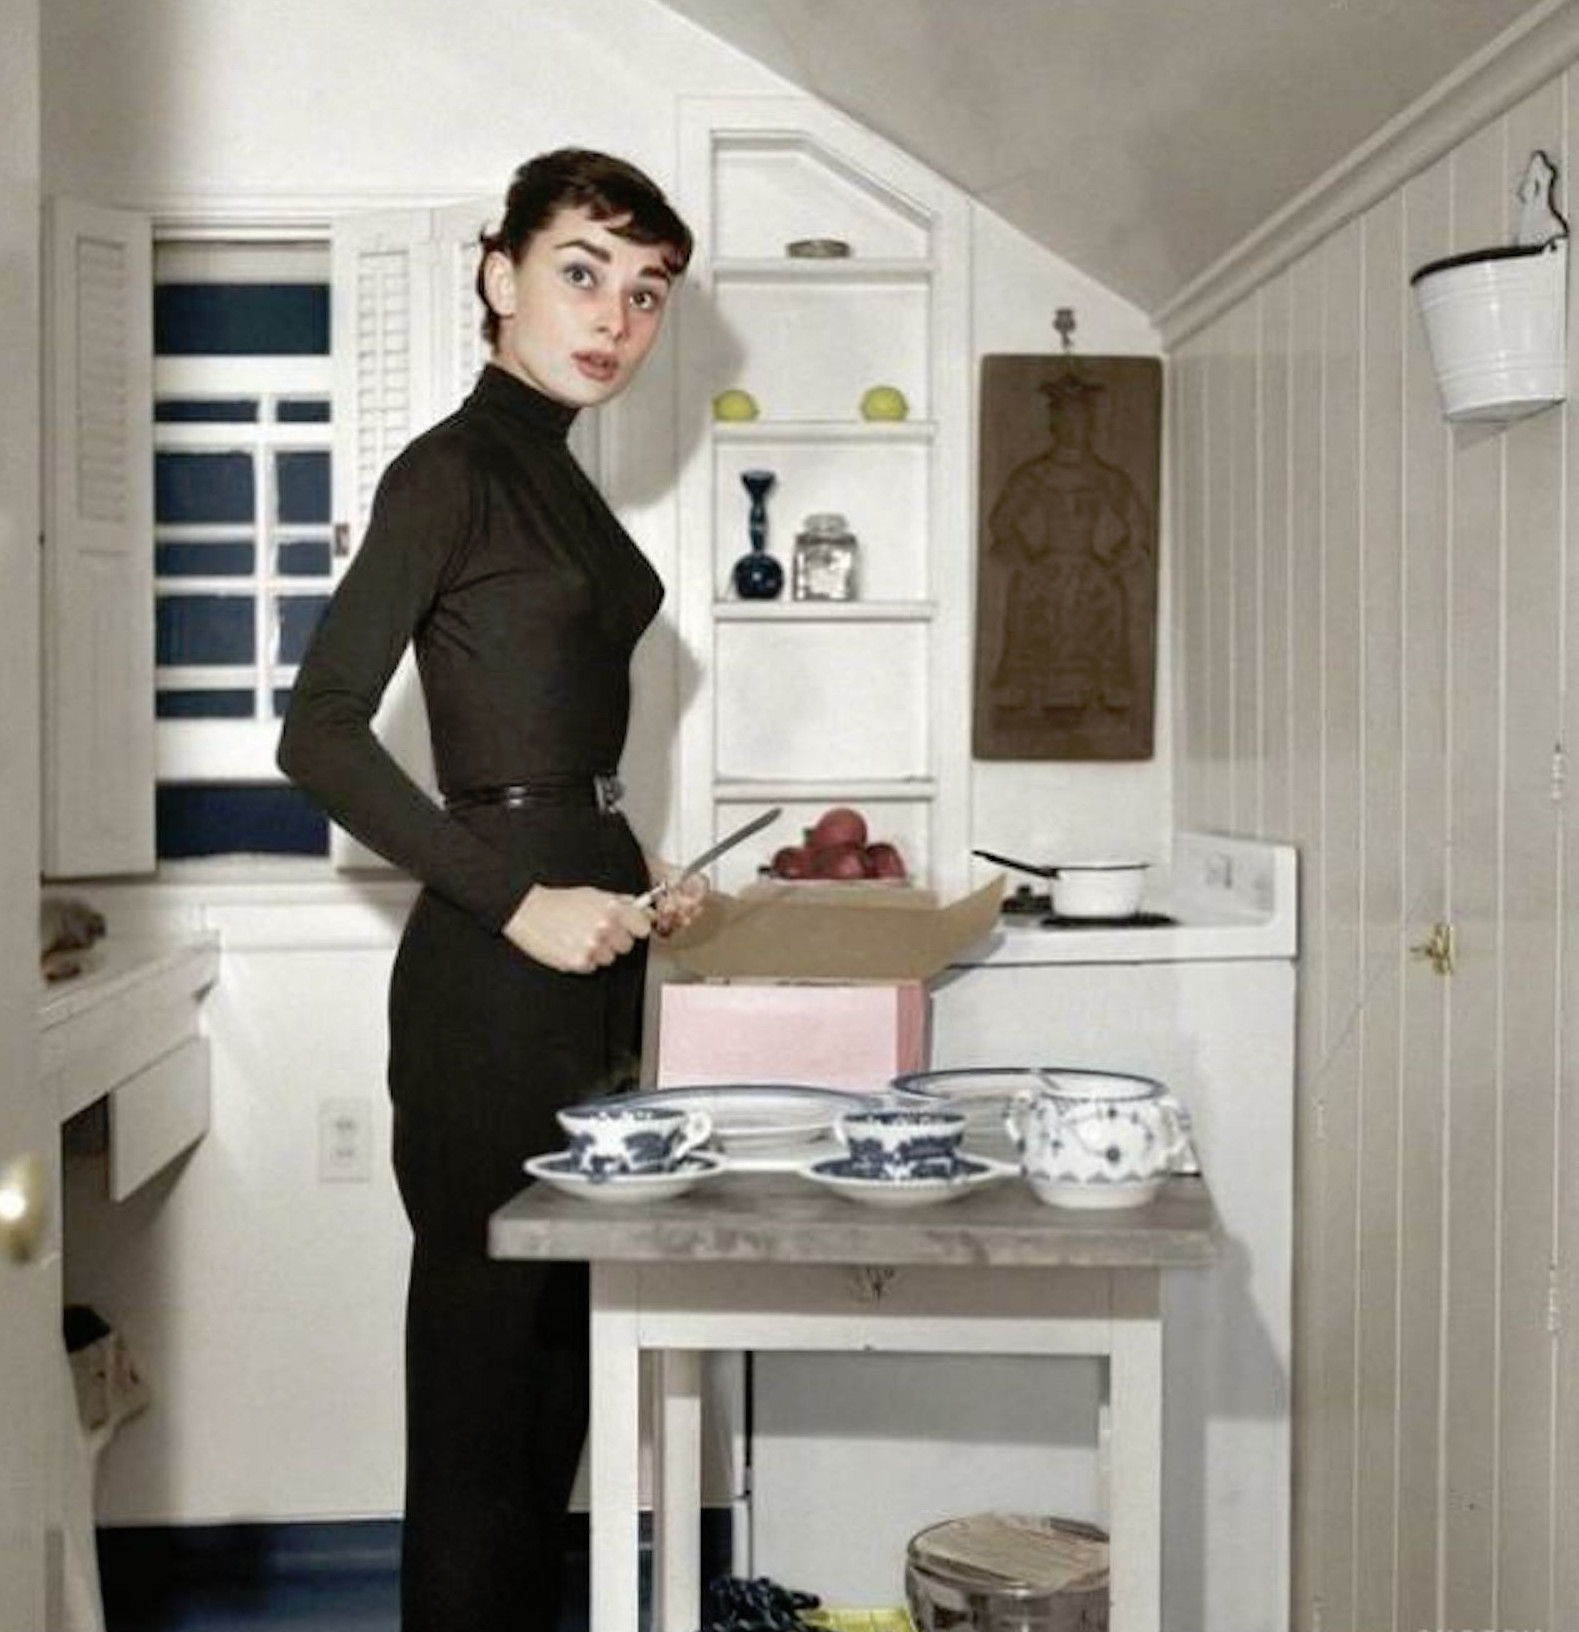 71b5d168068 All about Audrey Hepburn The Home Cook The History Kitchen Pbs Food ...